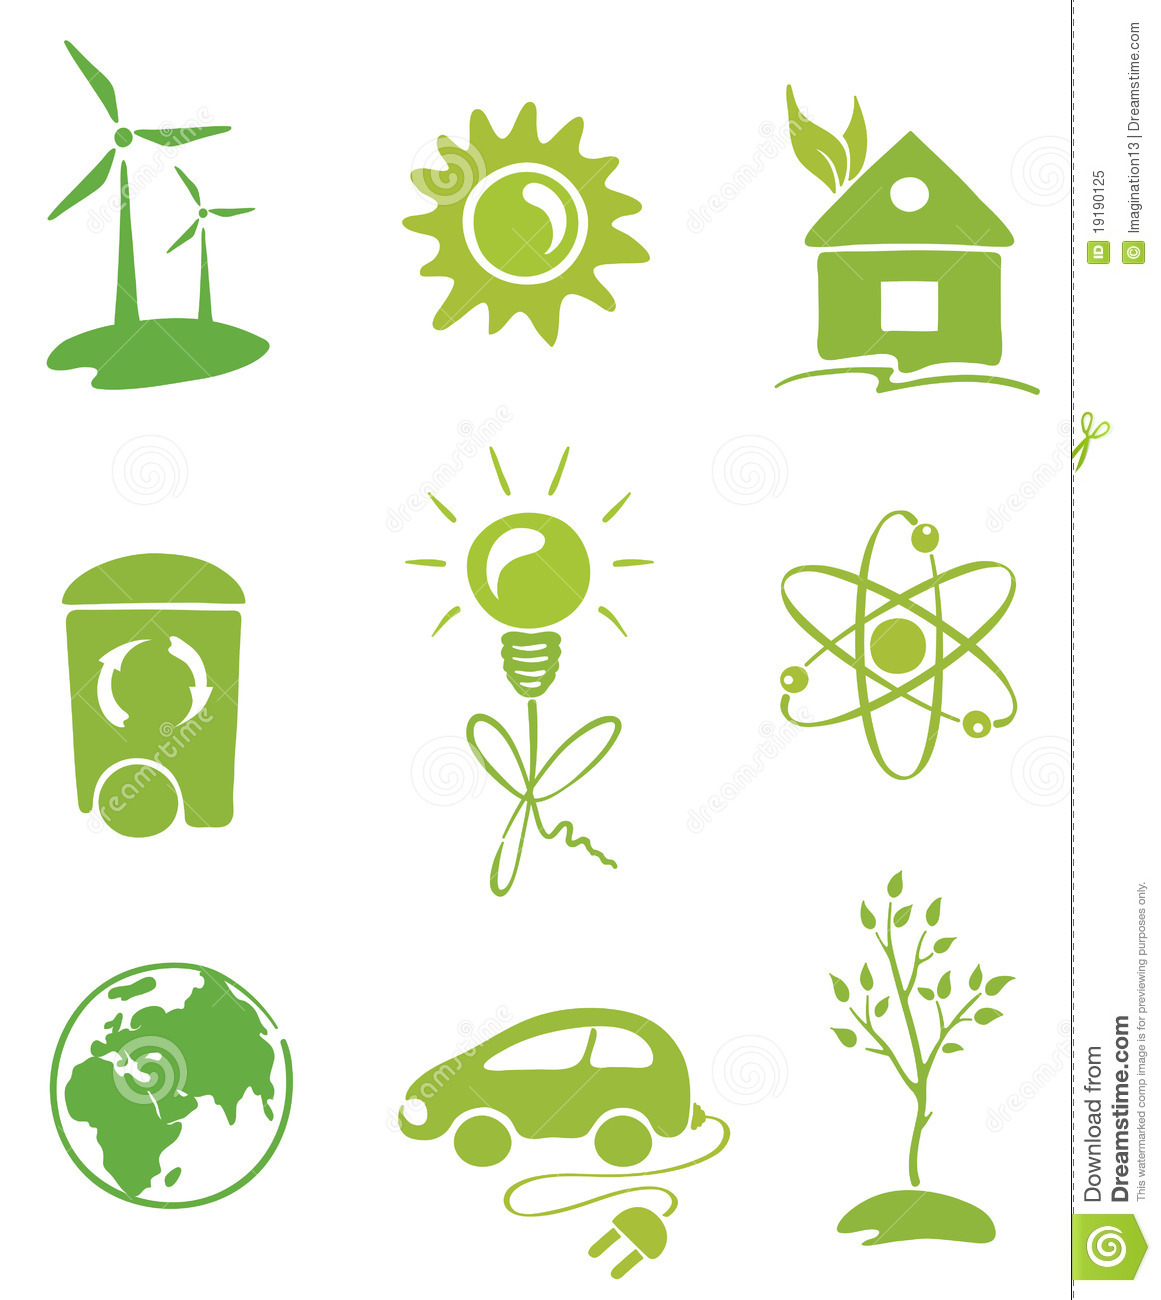 Green Energy Royalty Free Stock Photo - Image: 19190125